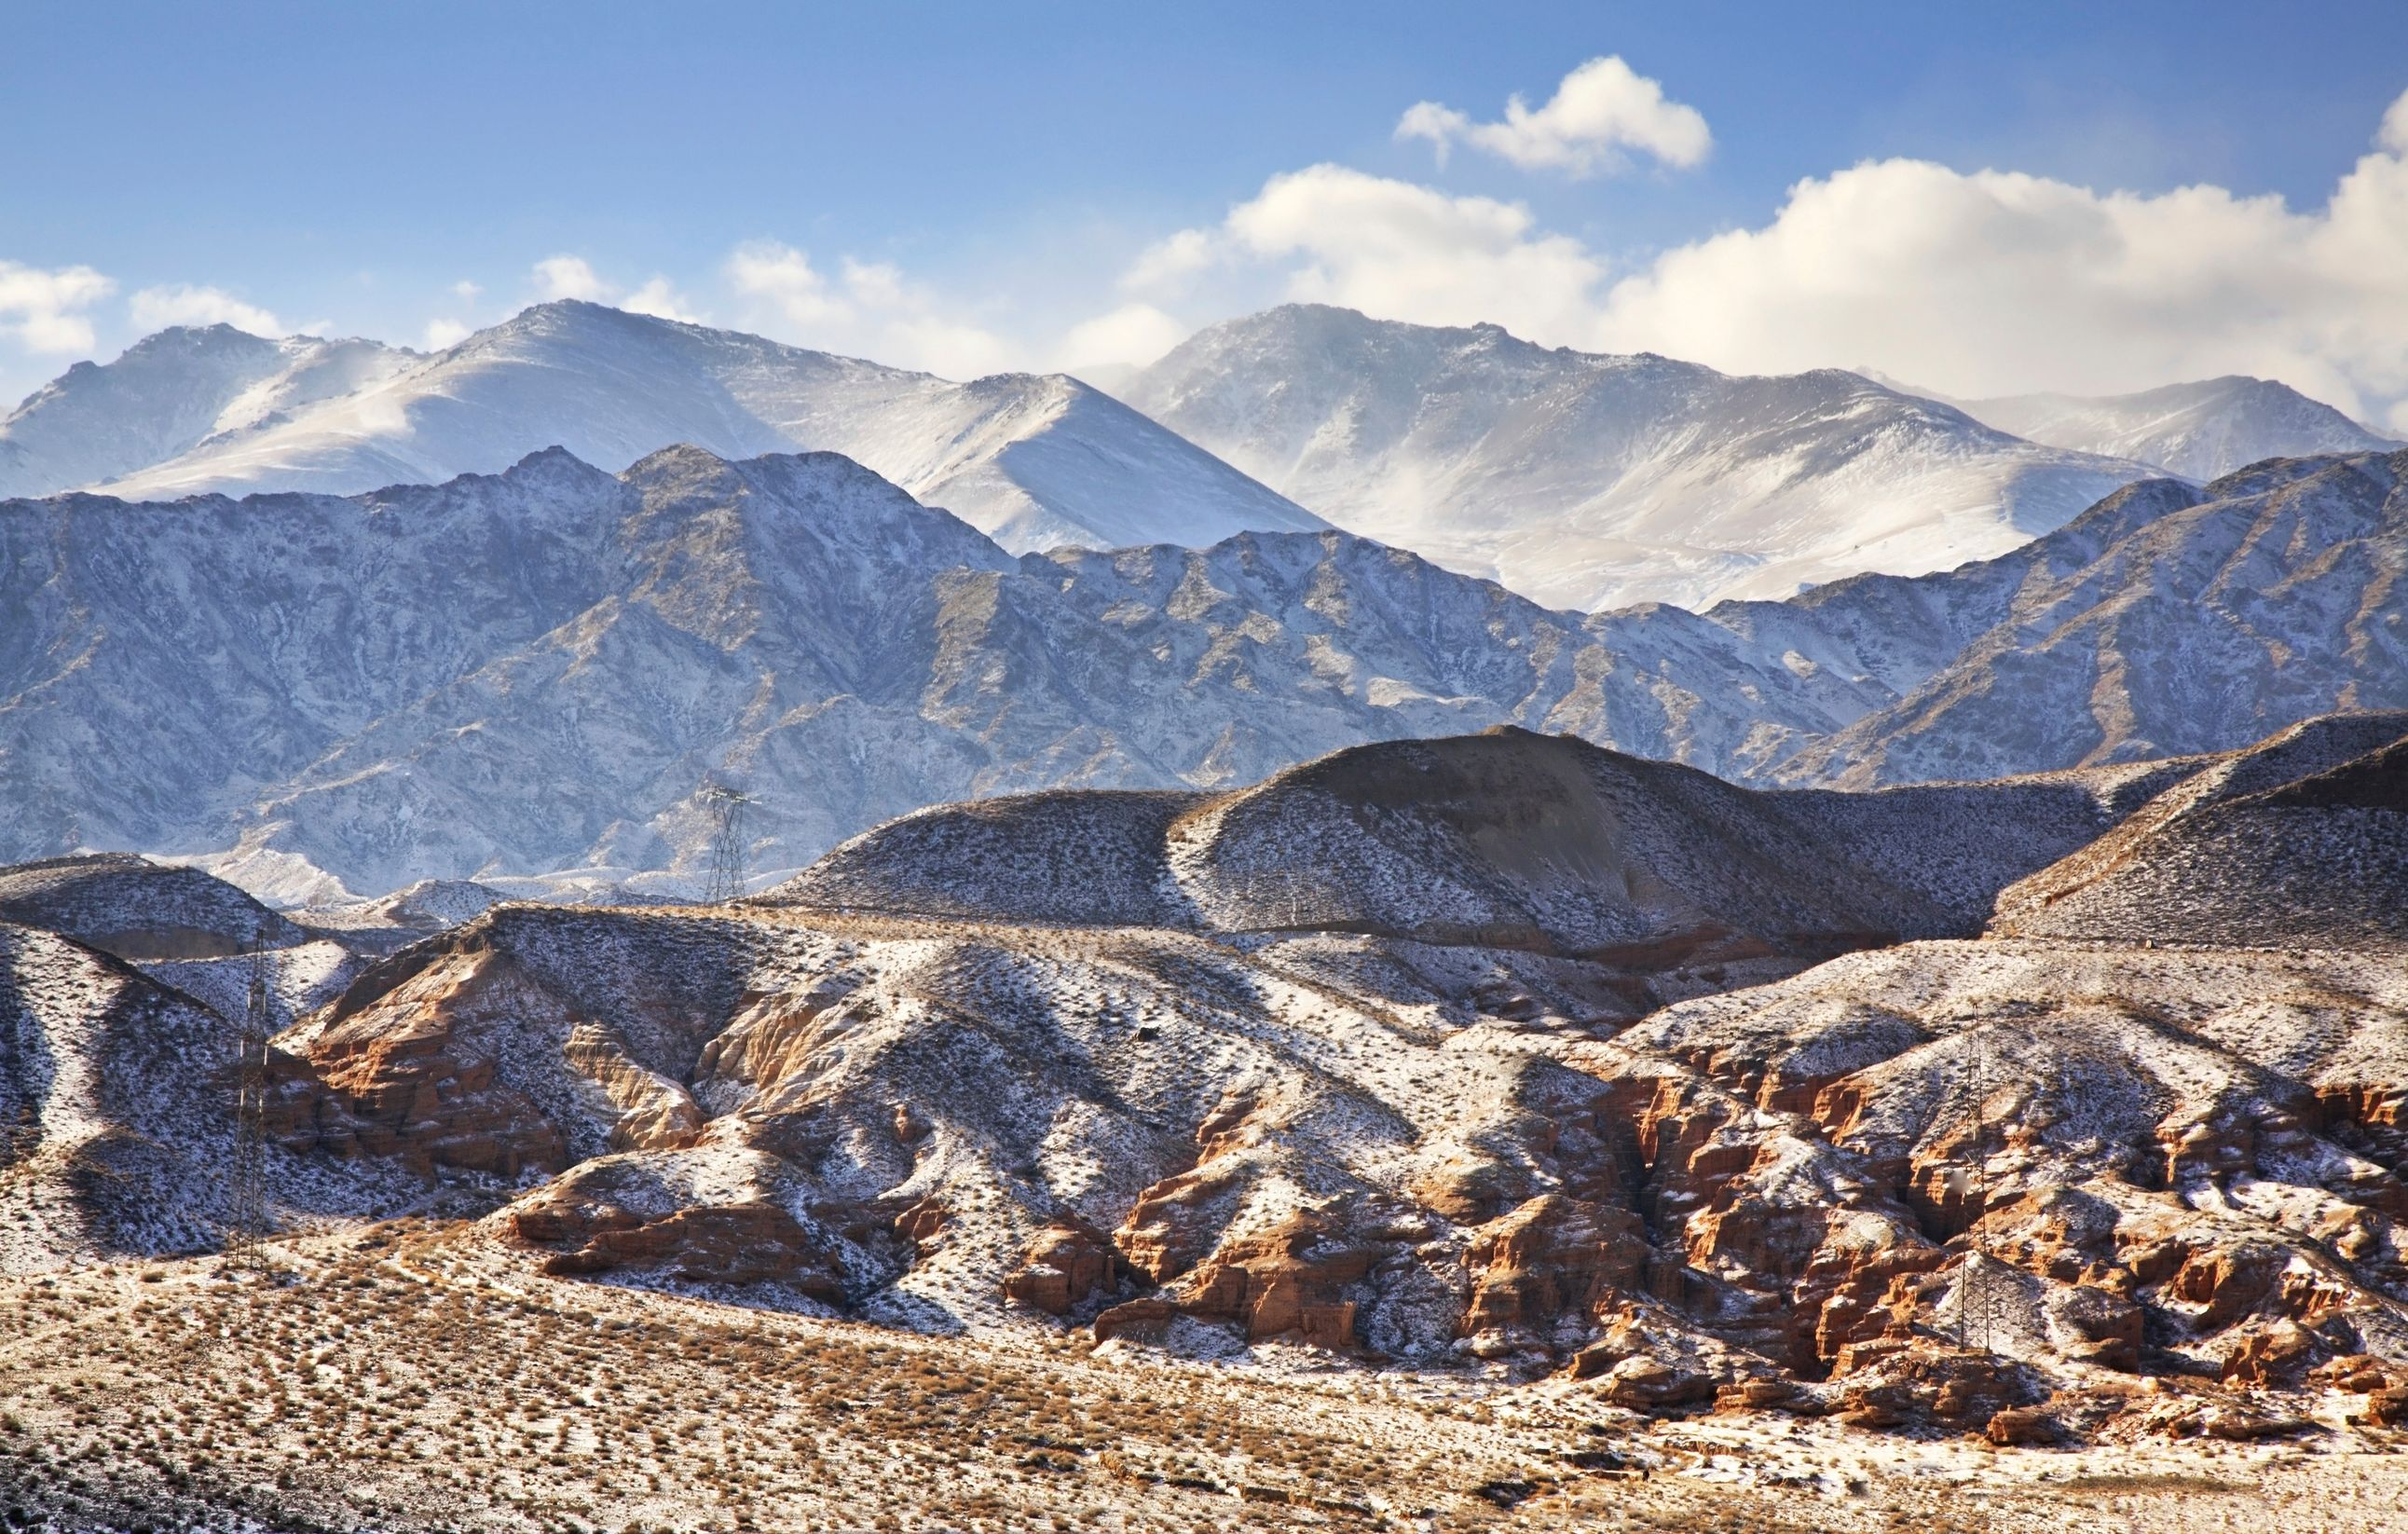 The vast landscapes of Kyrgyzstan